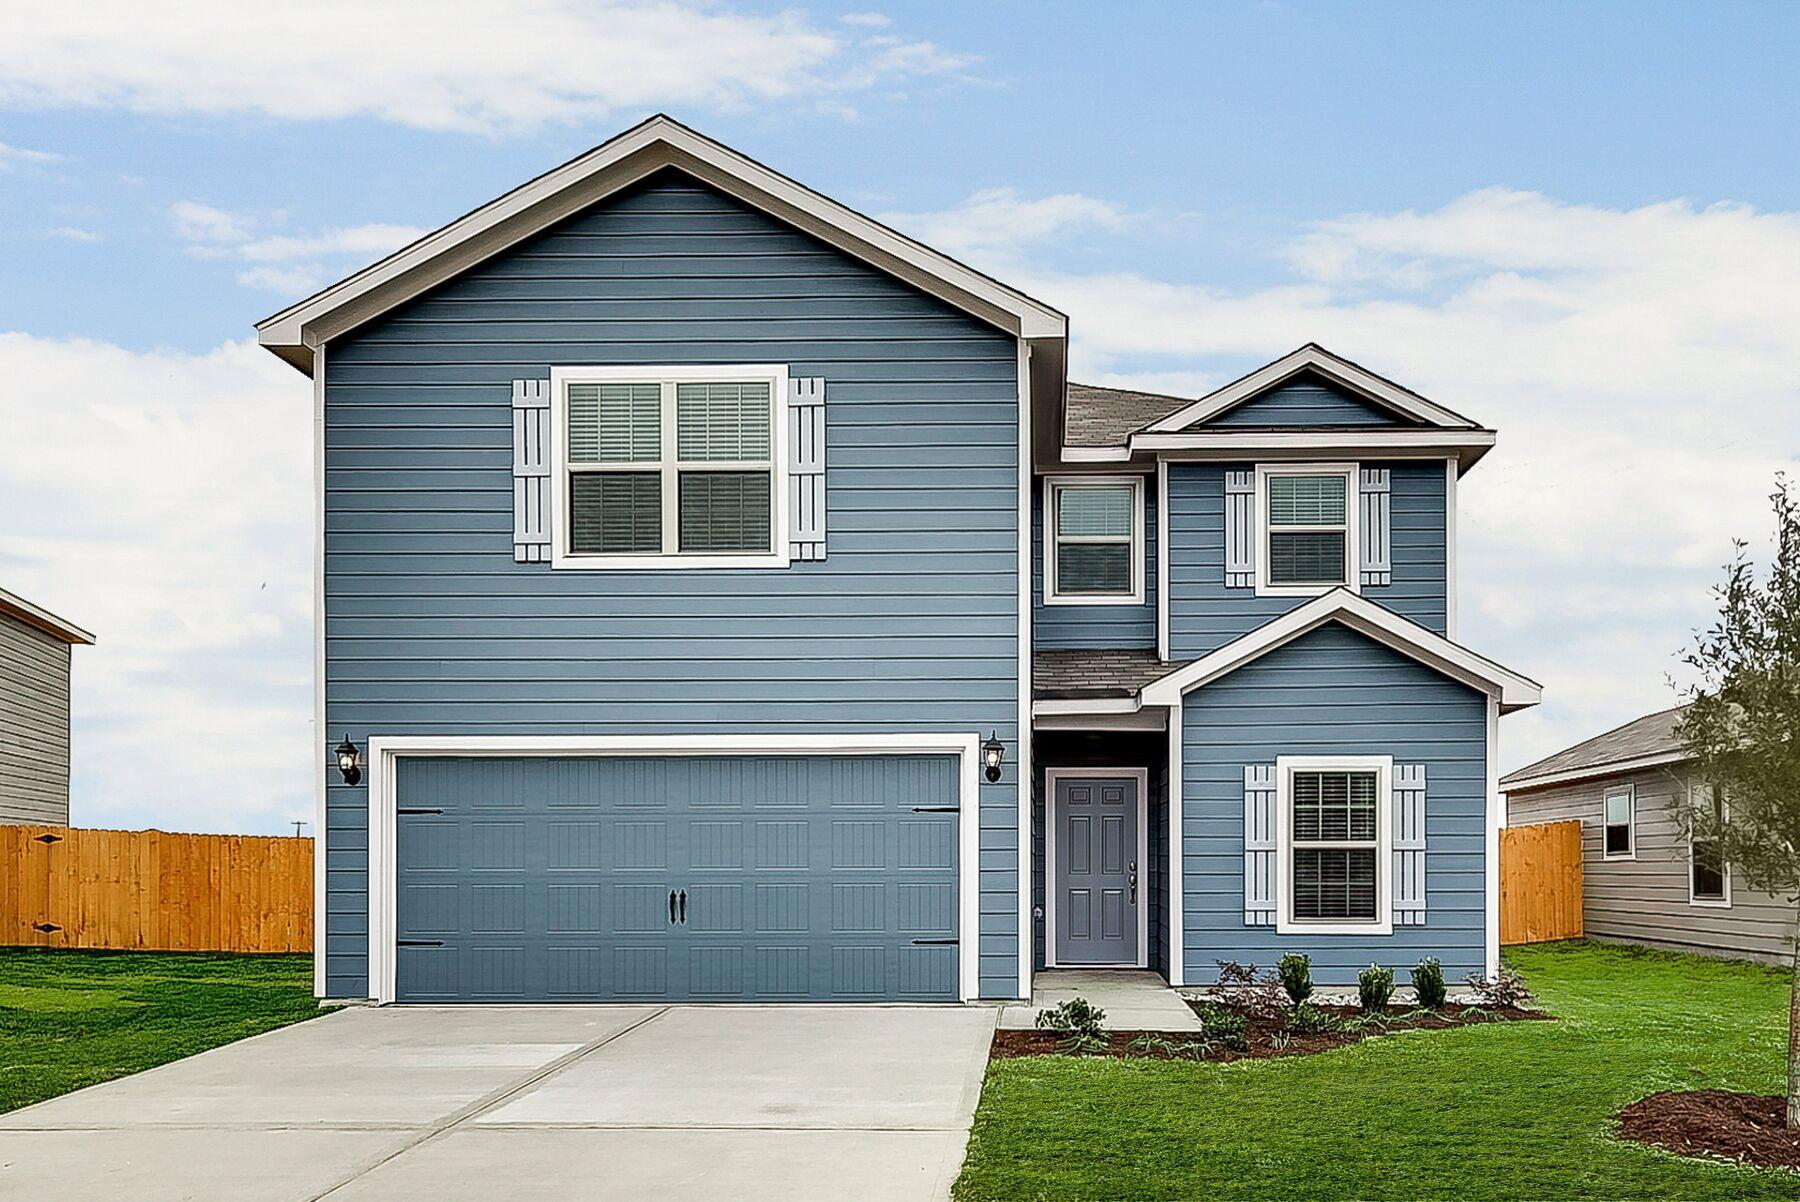 The Driftwood by LGI Homes:The Driftwood plan at Patriot Estates.